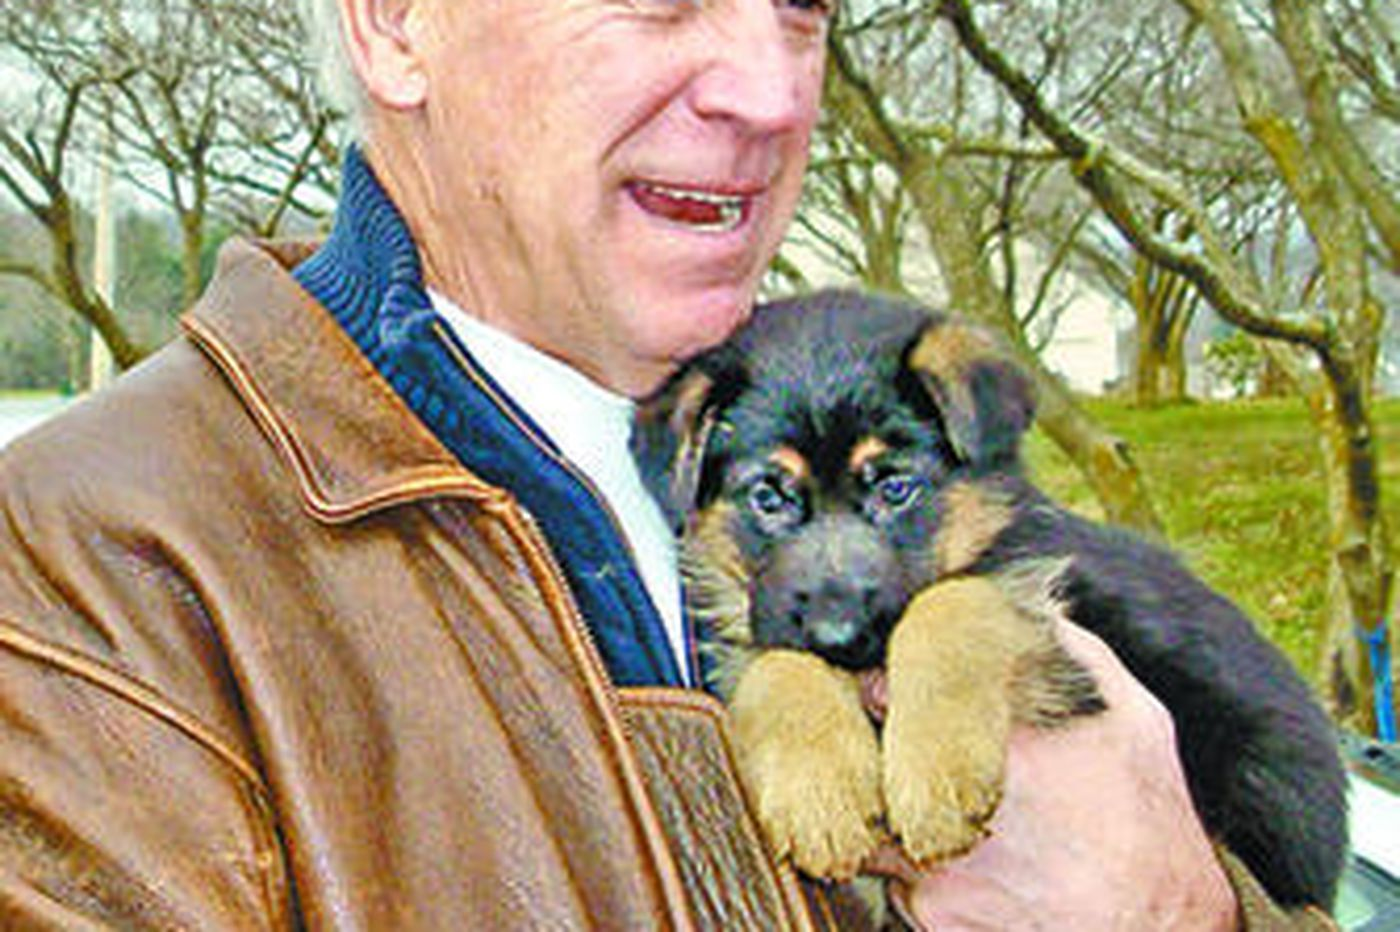 Biden buys a German shepherd puppy from a Pa. kennel